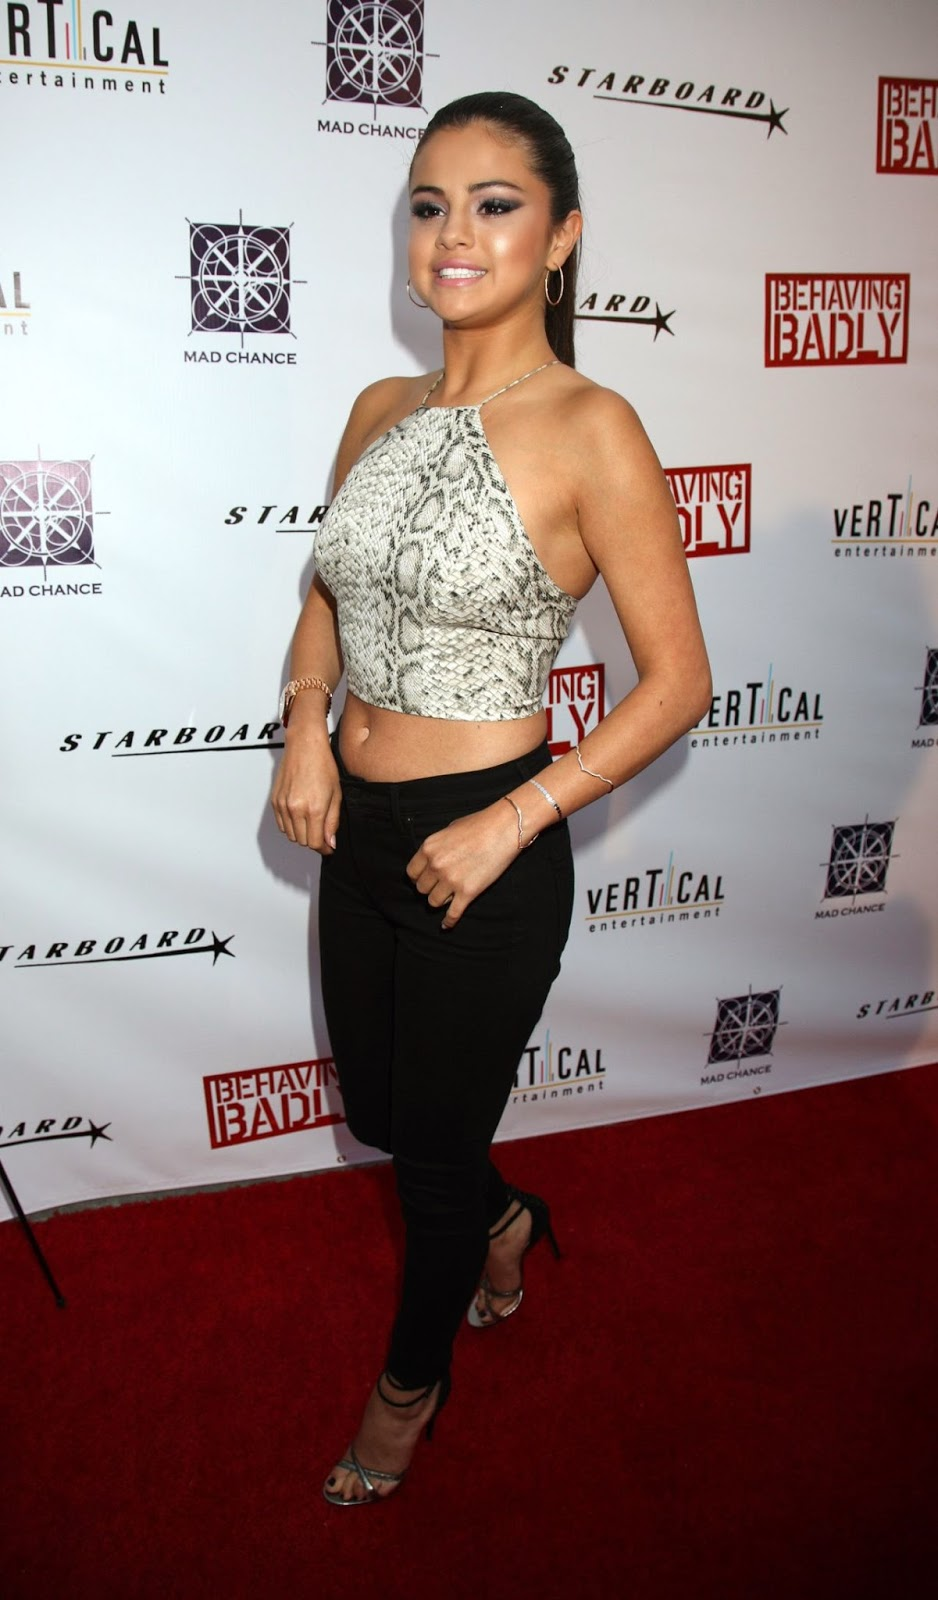 Selena Gomez shows toned midriff in a snakeskin cropped top at the 'Behaving Badly' Hollywood premiere